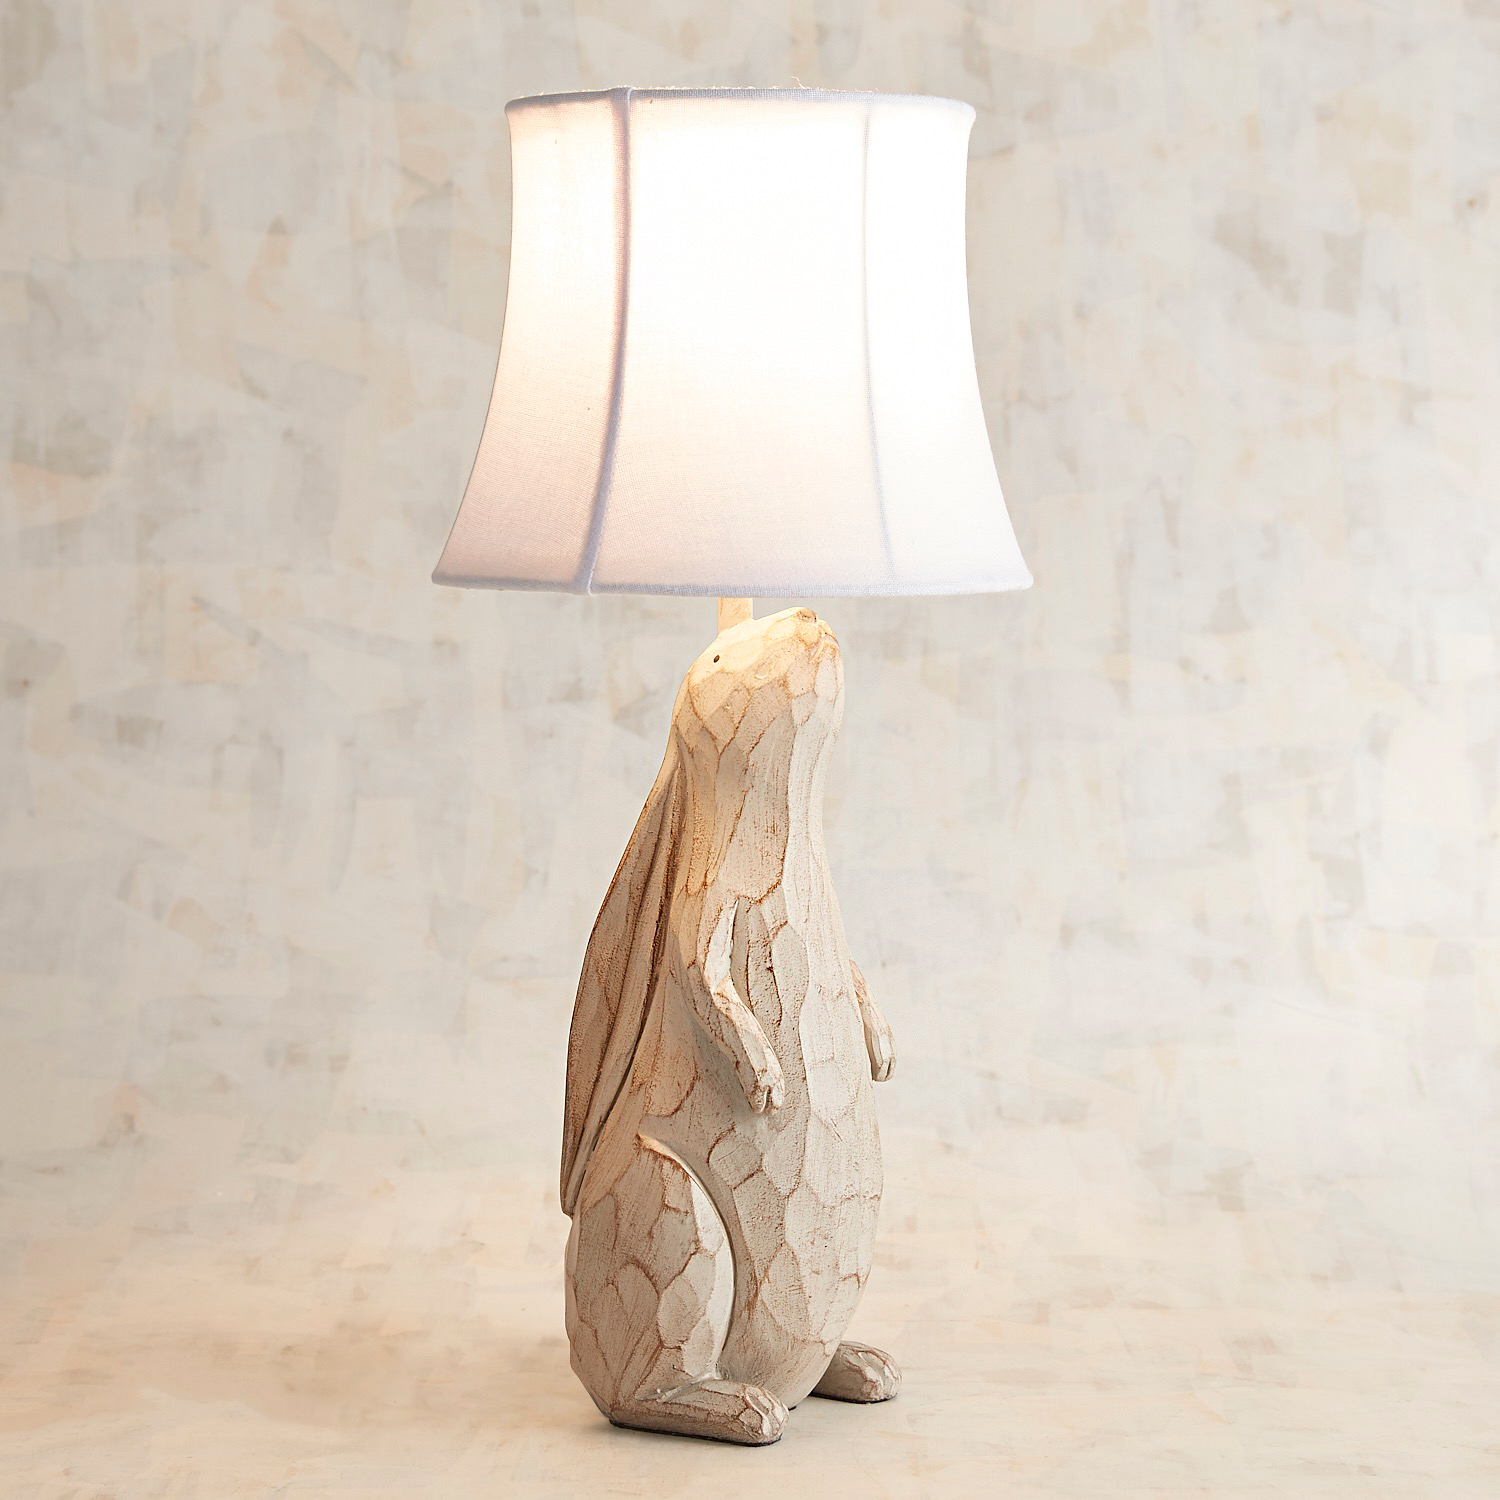 variation thumbnail of Sofie the Bunny Table Lamp